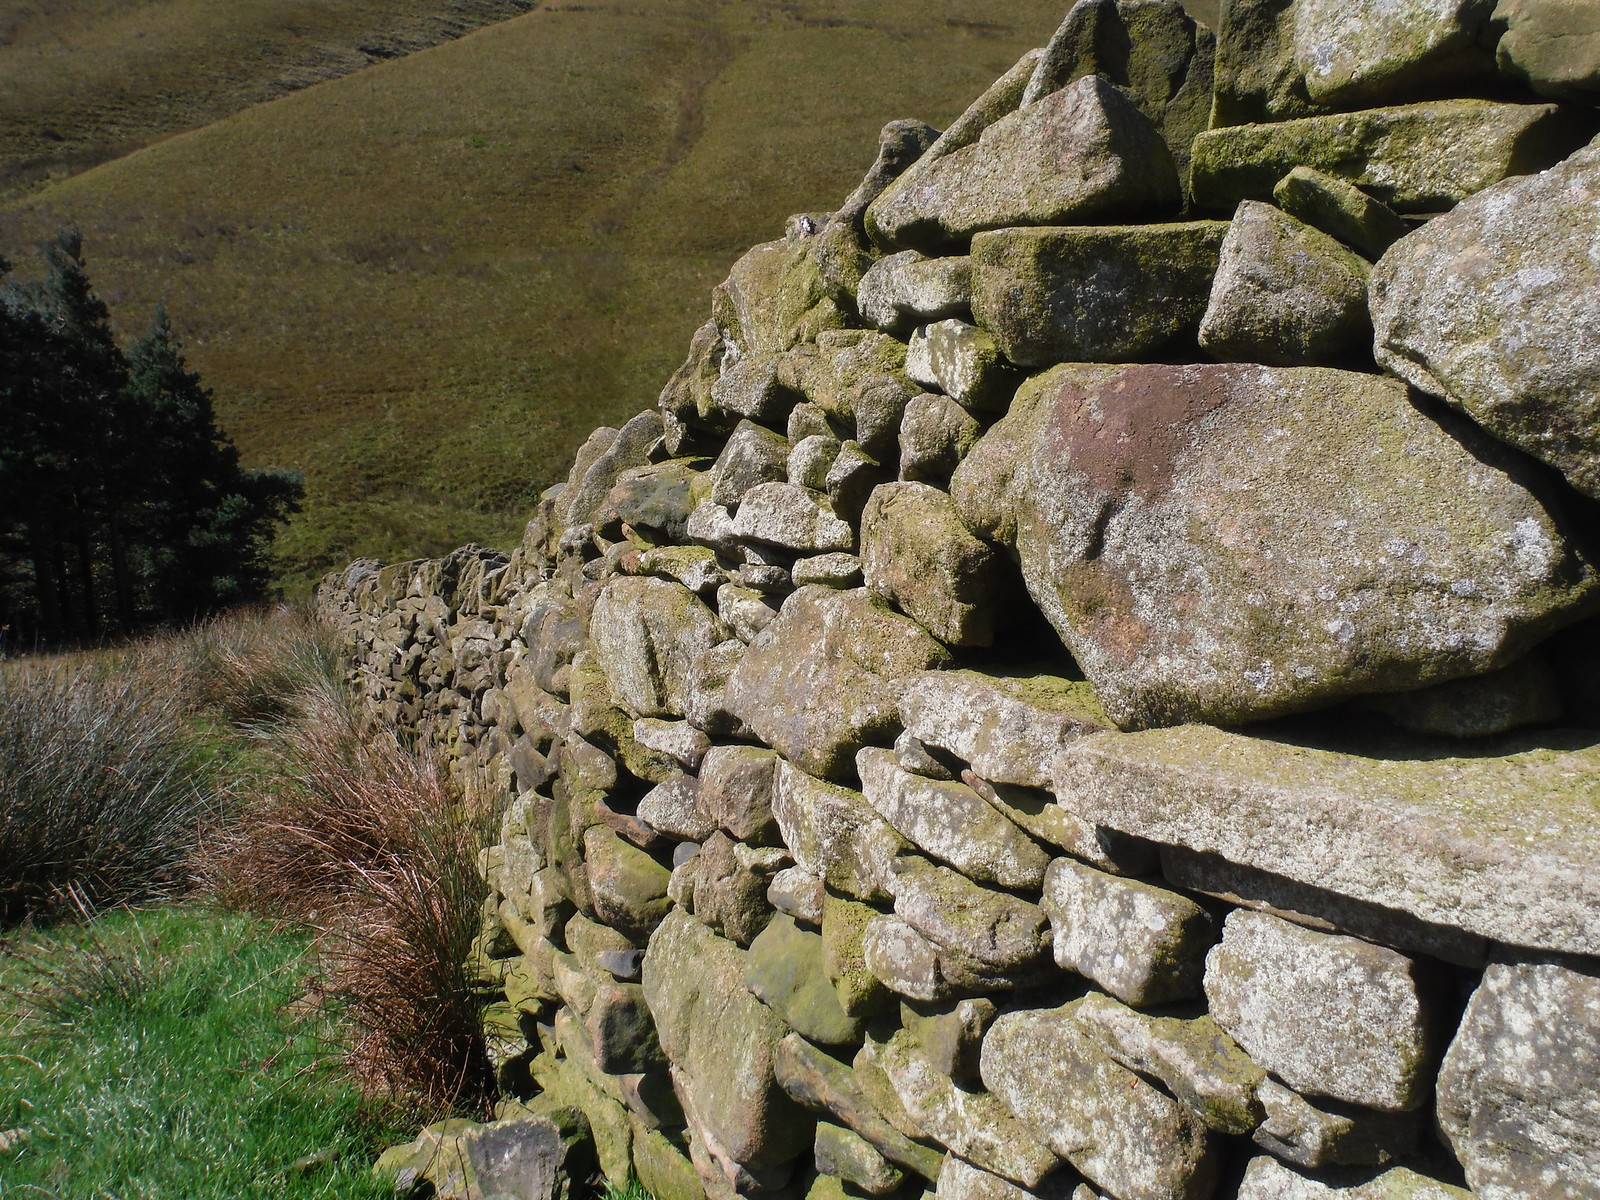 Drystone Wall, Pennine Way SWC Walk 303 - Edale Circular (via Kinder Scout and Mam Tor)